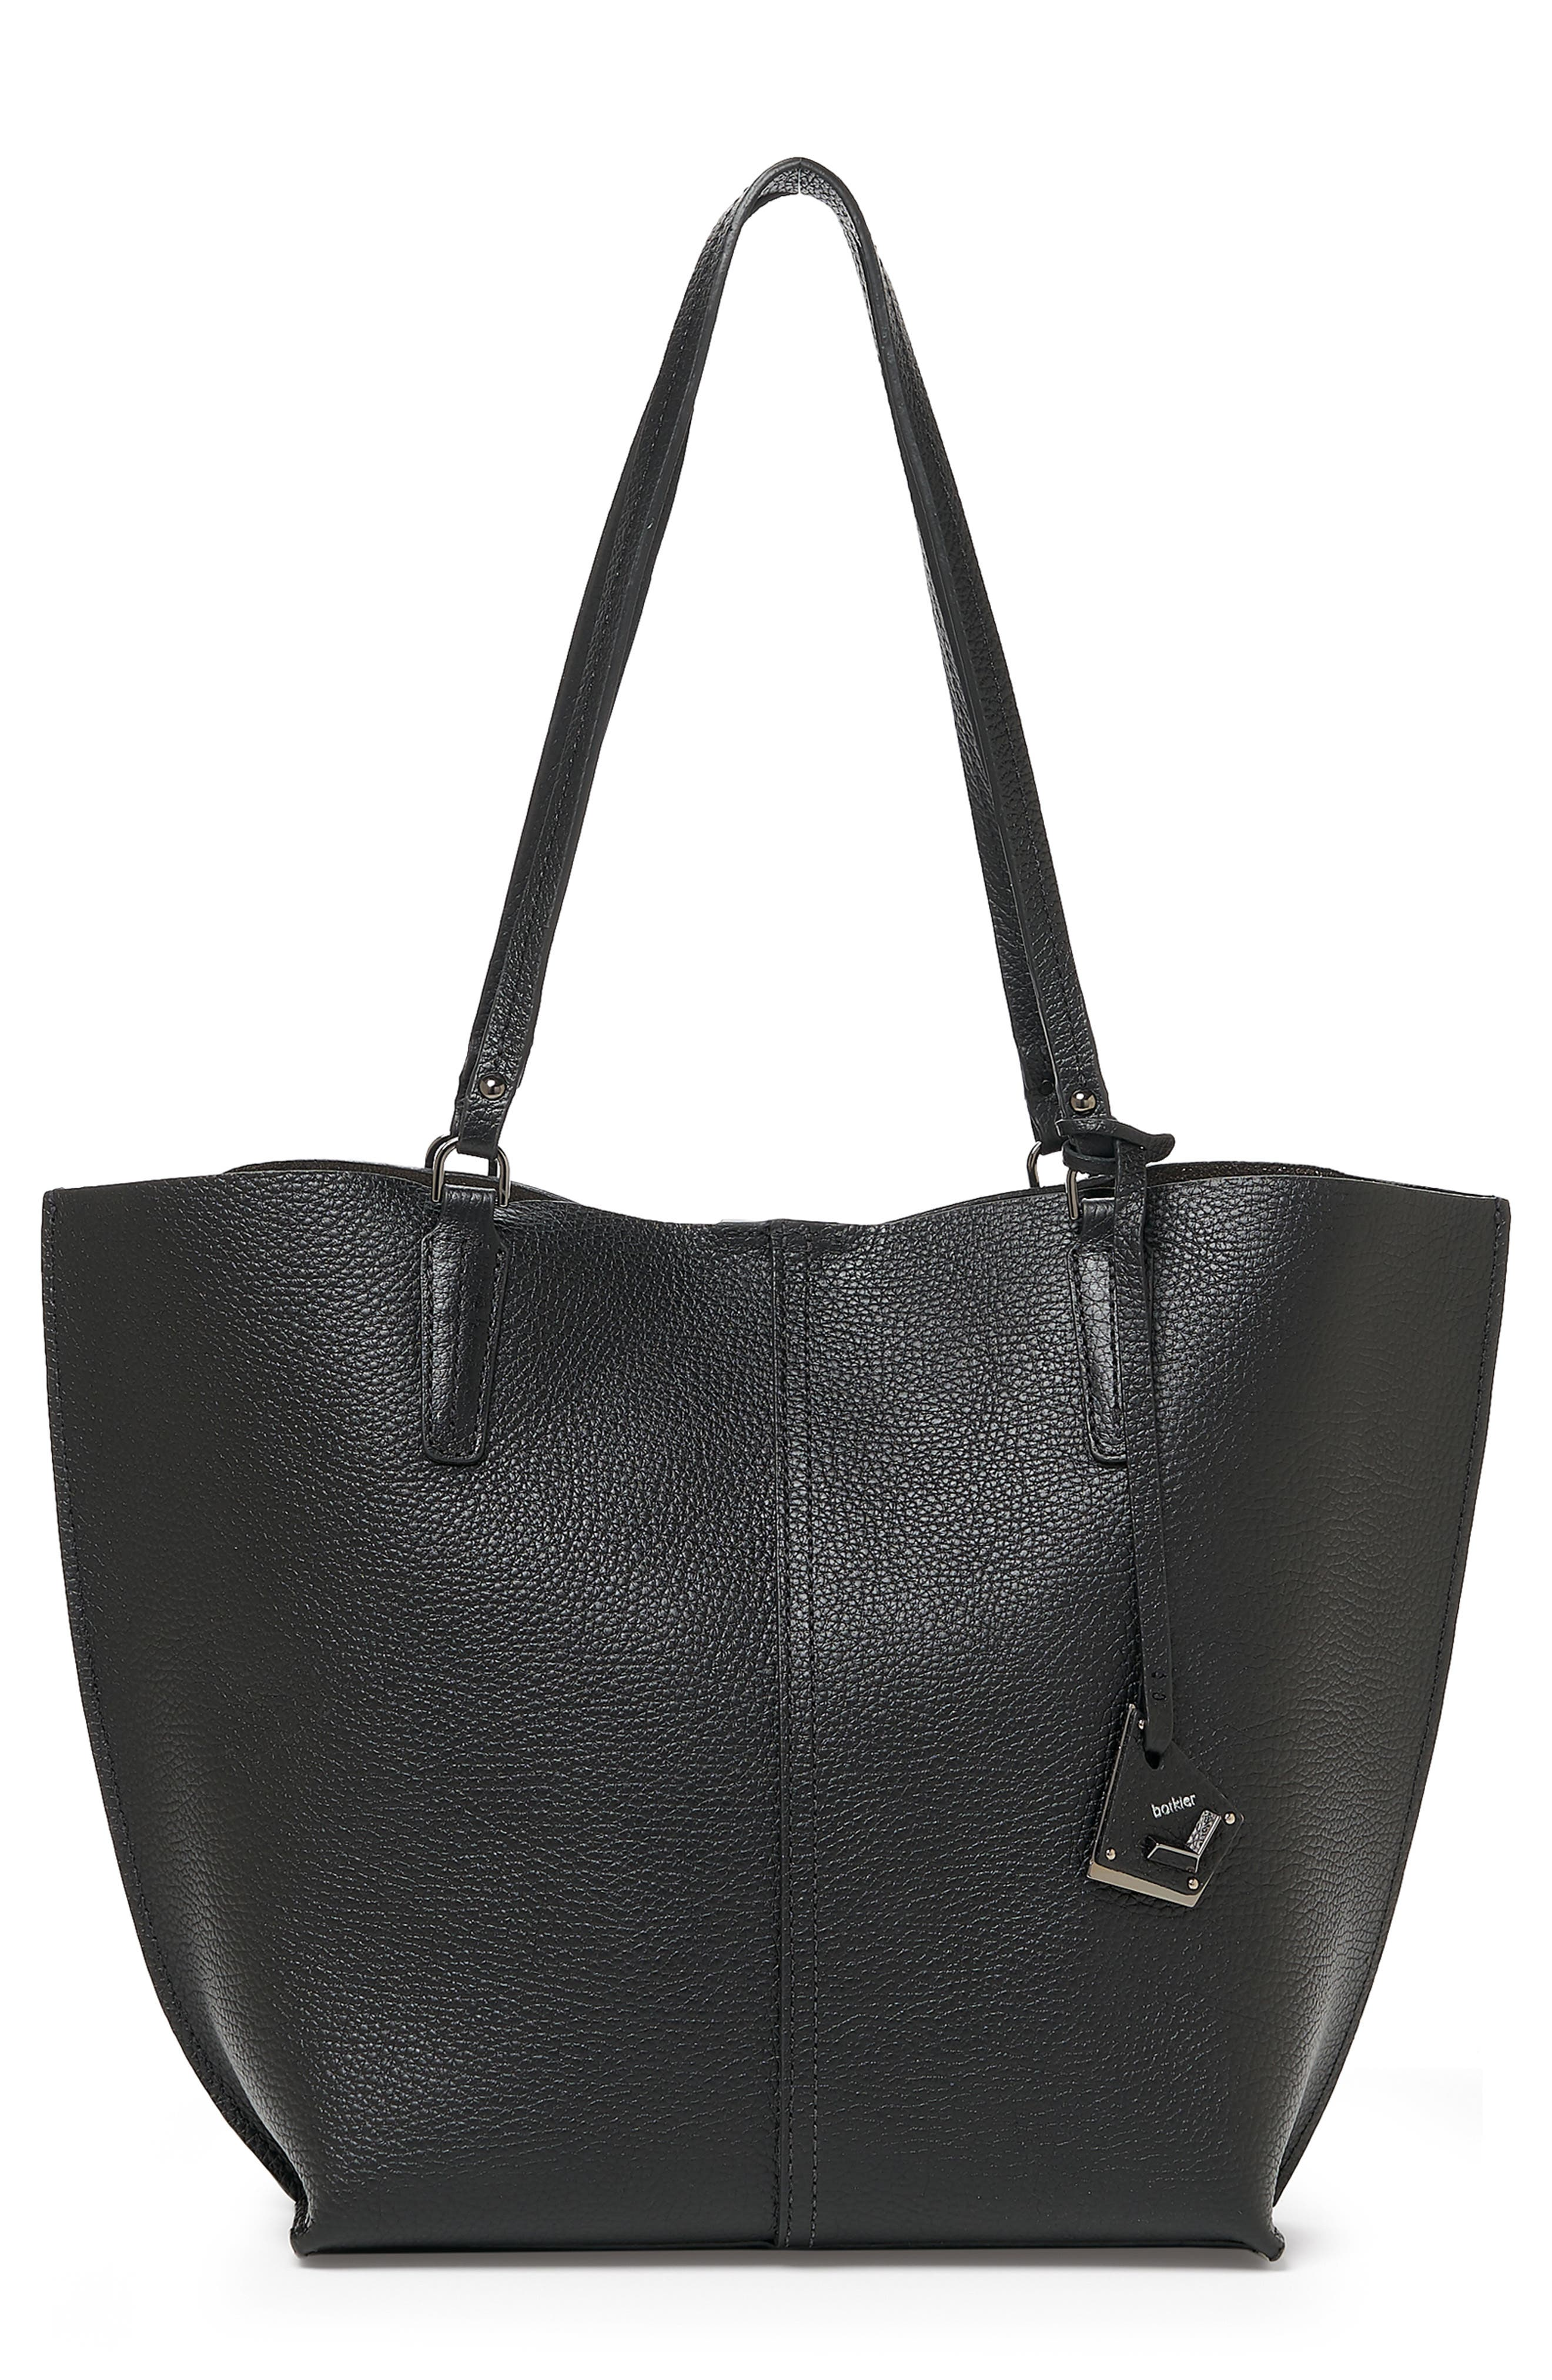 Hudson Pebbled Leather Tote